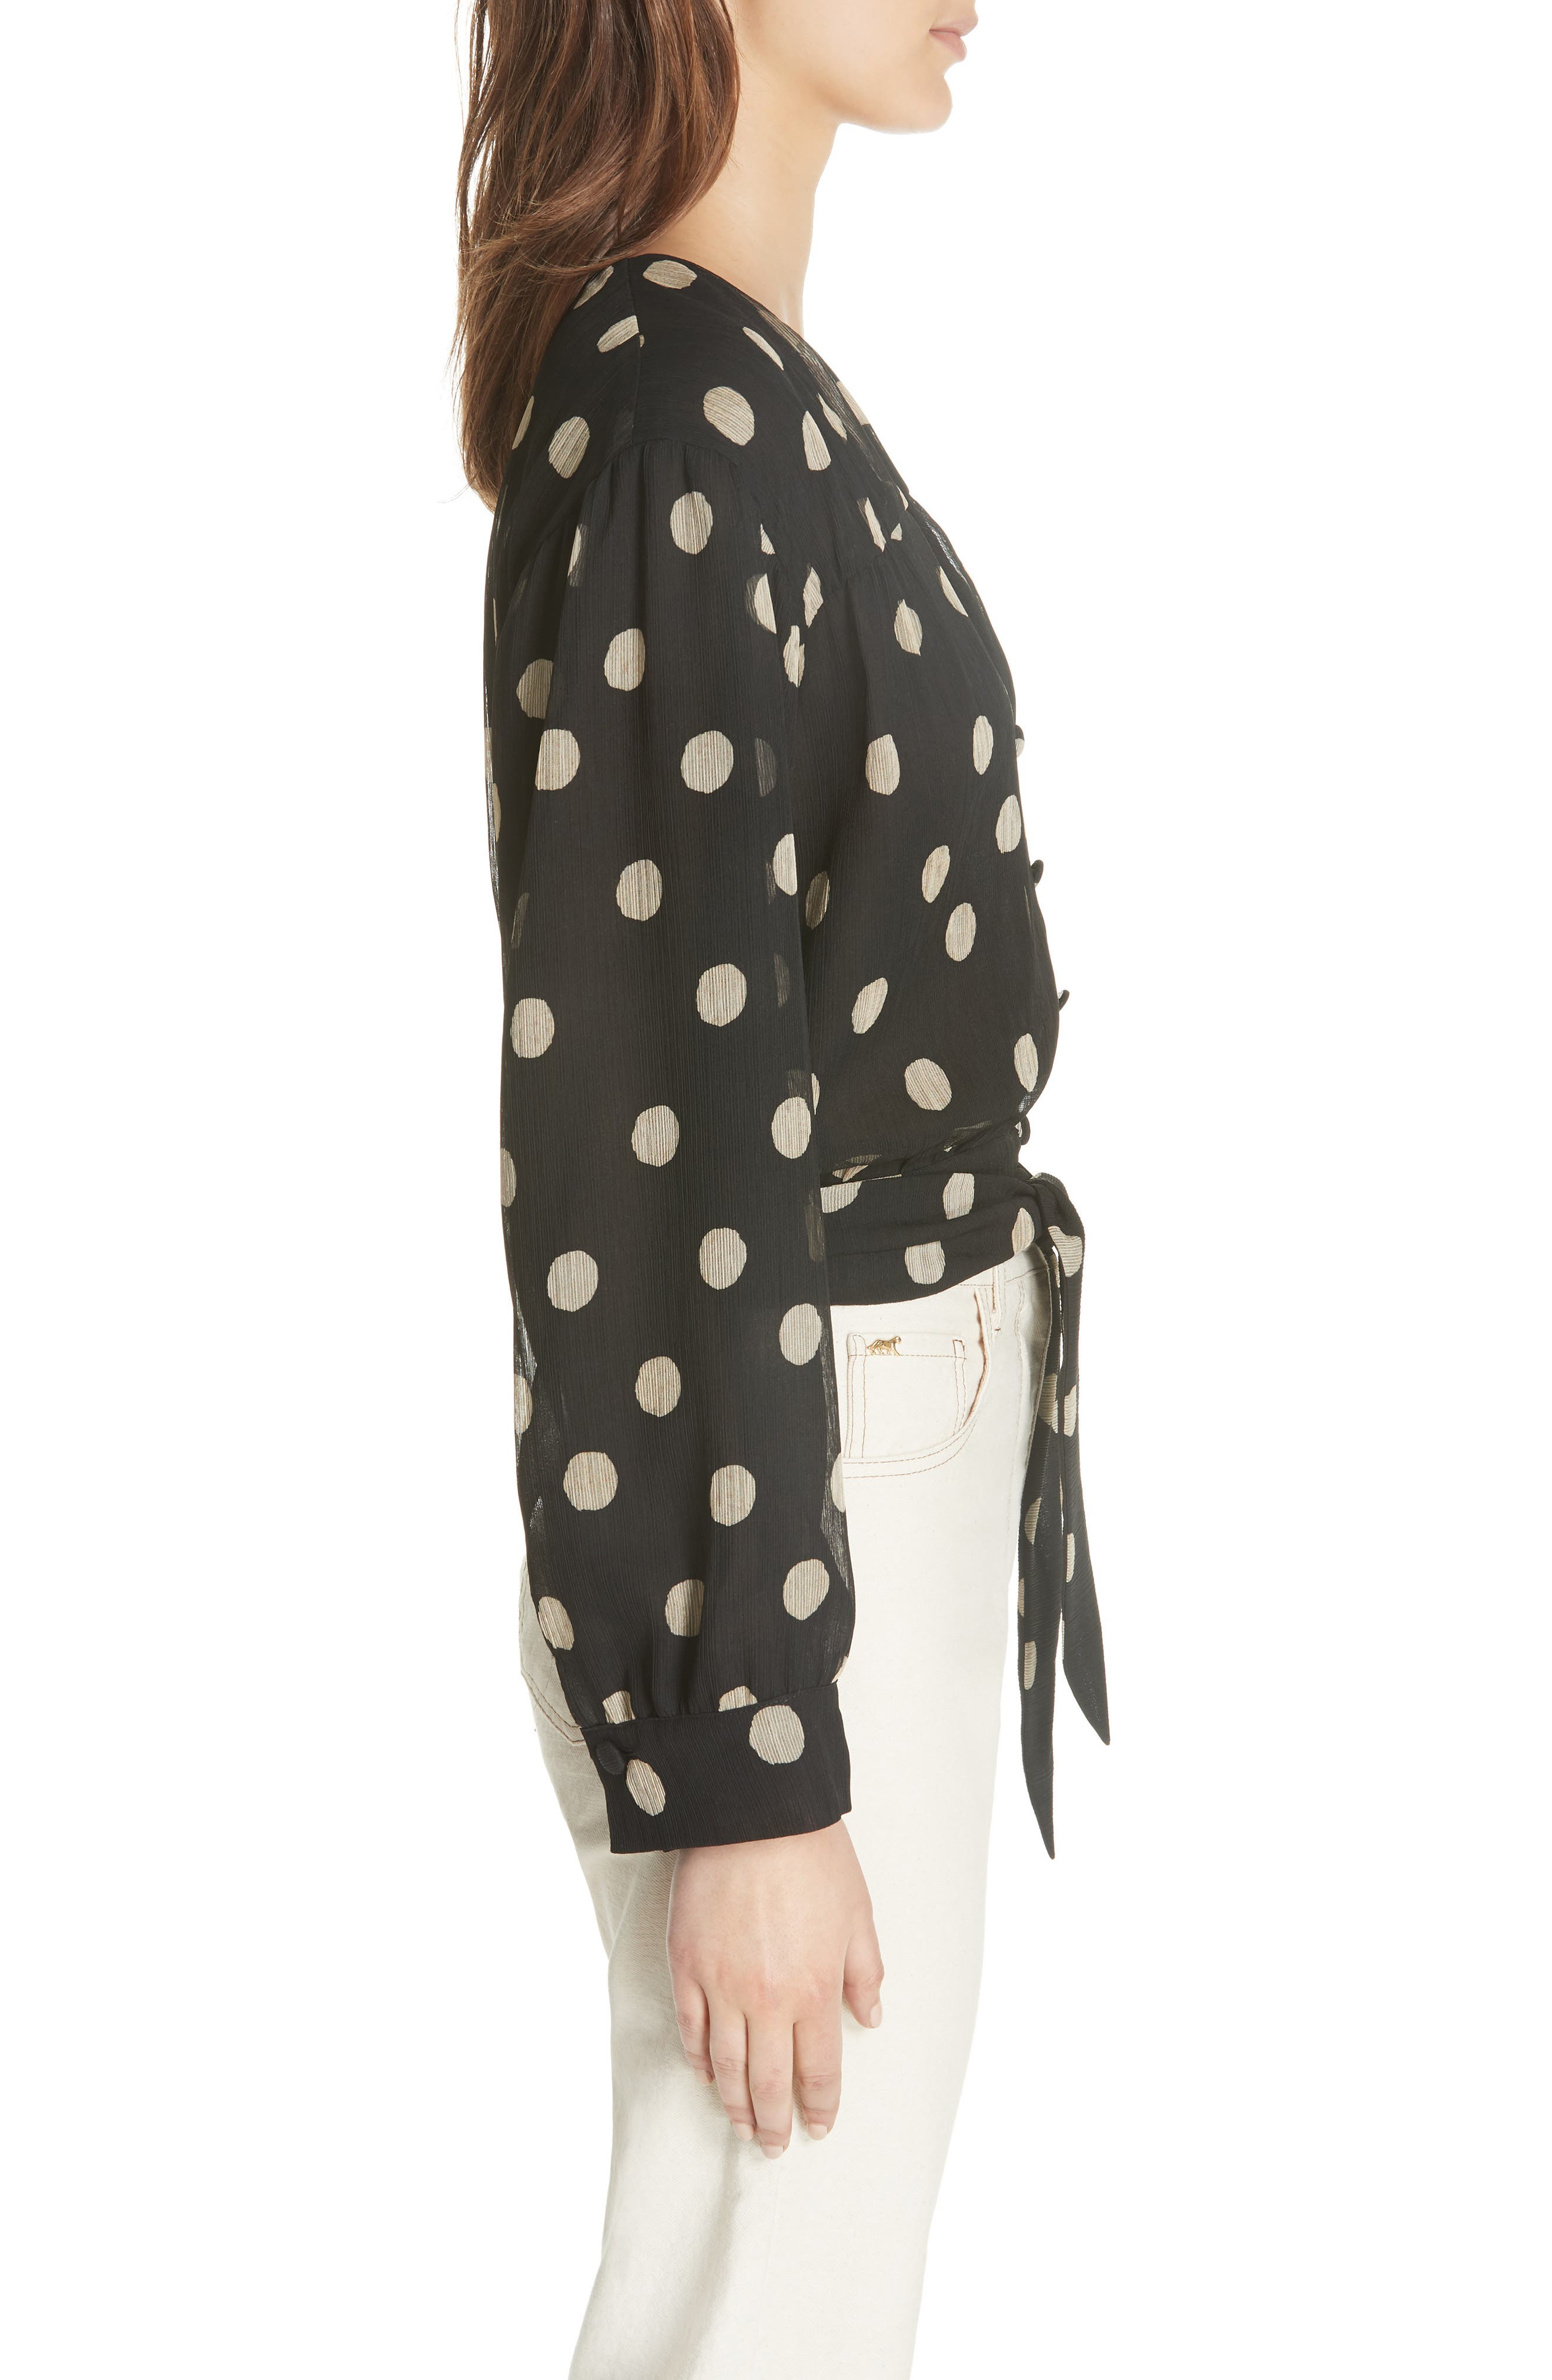 NANUSHKA,                             Amulet Polka Dot Tech Chiffon Blouse,                             Alternate thumbnail 3, color,                             001